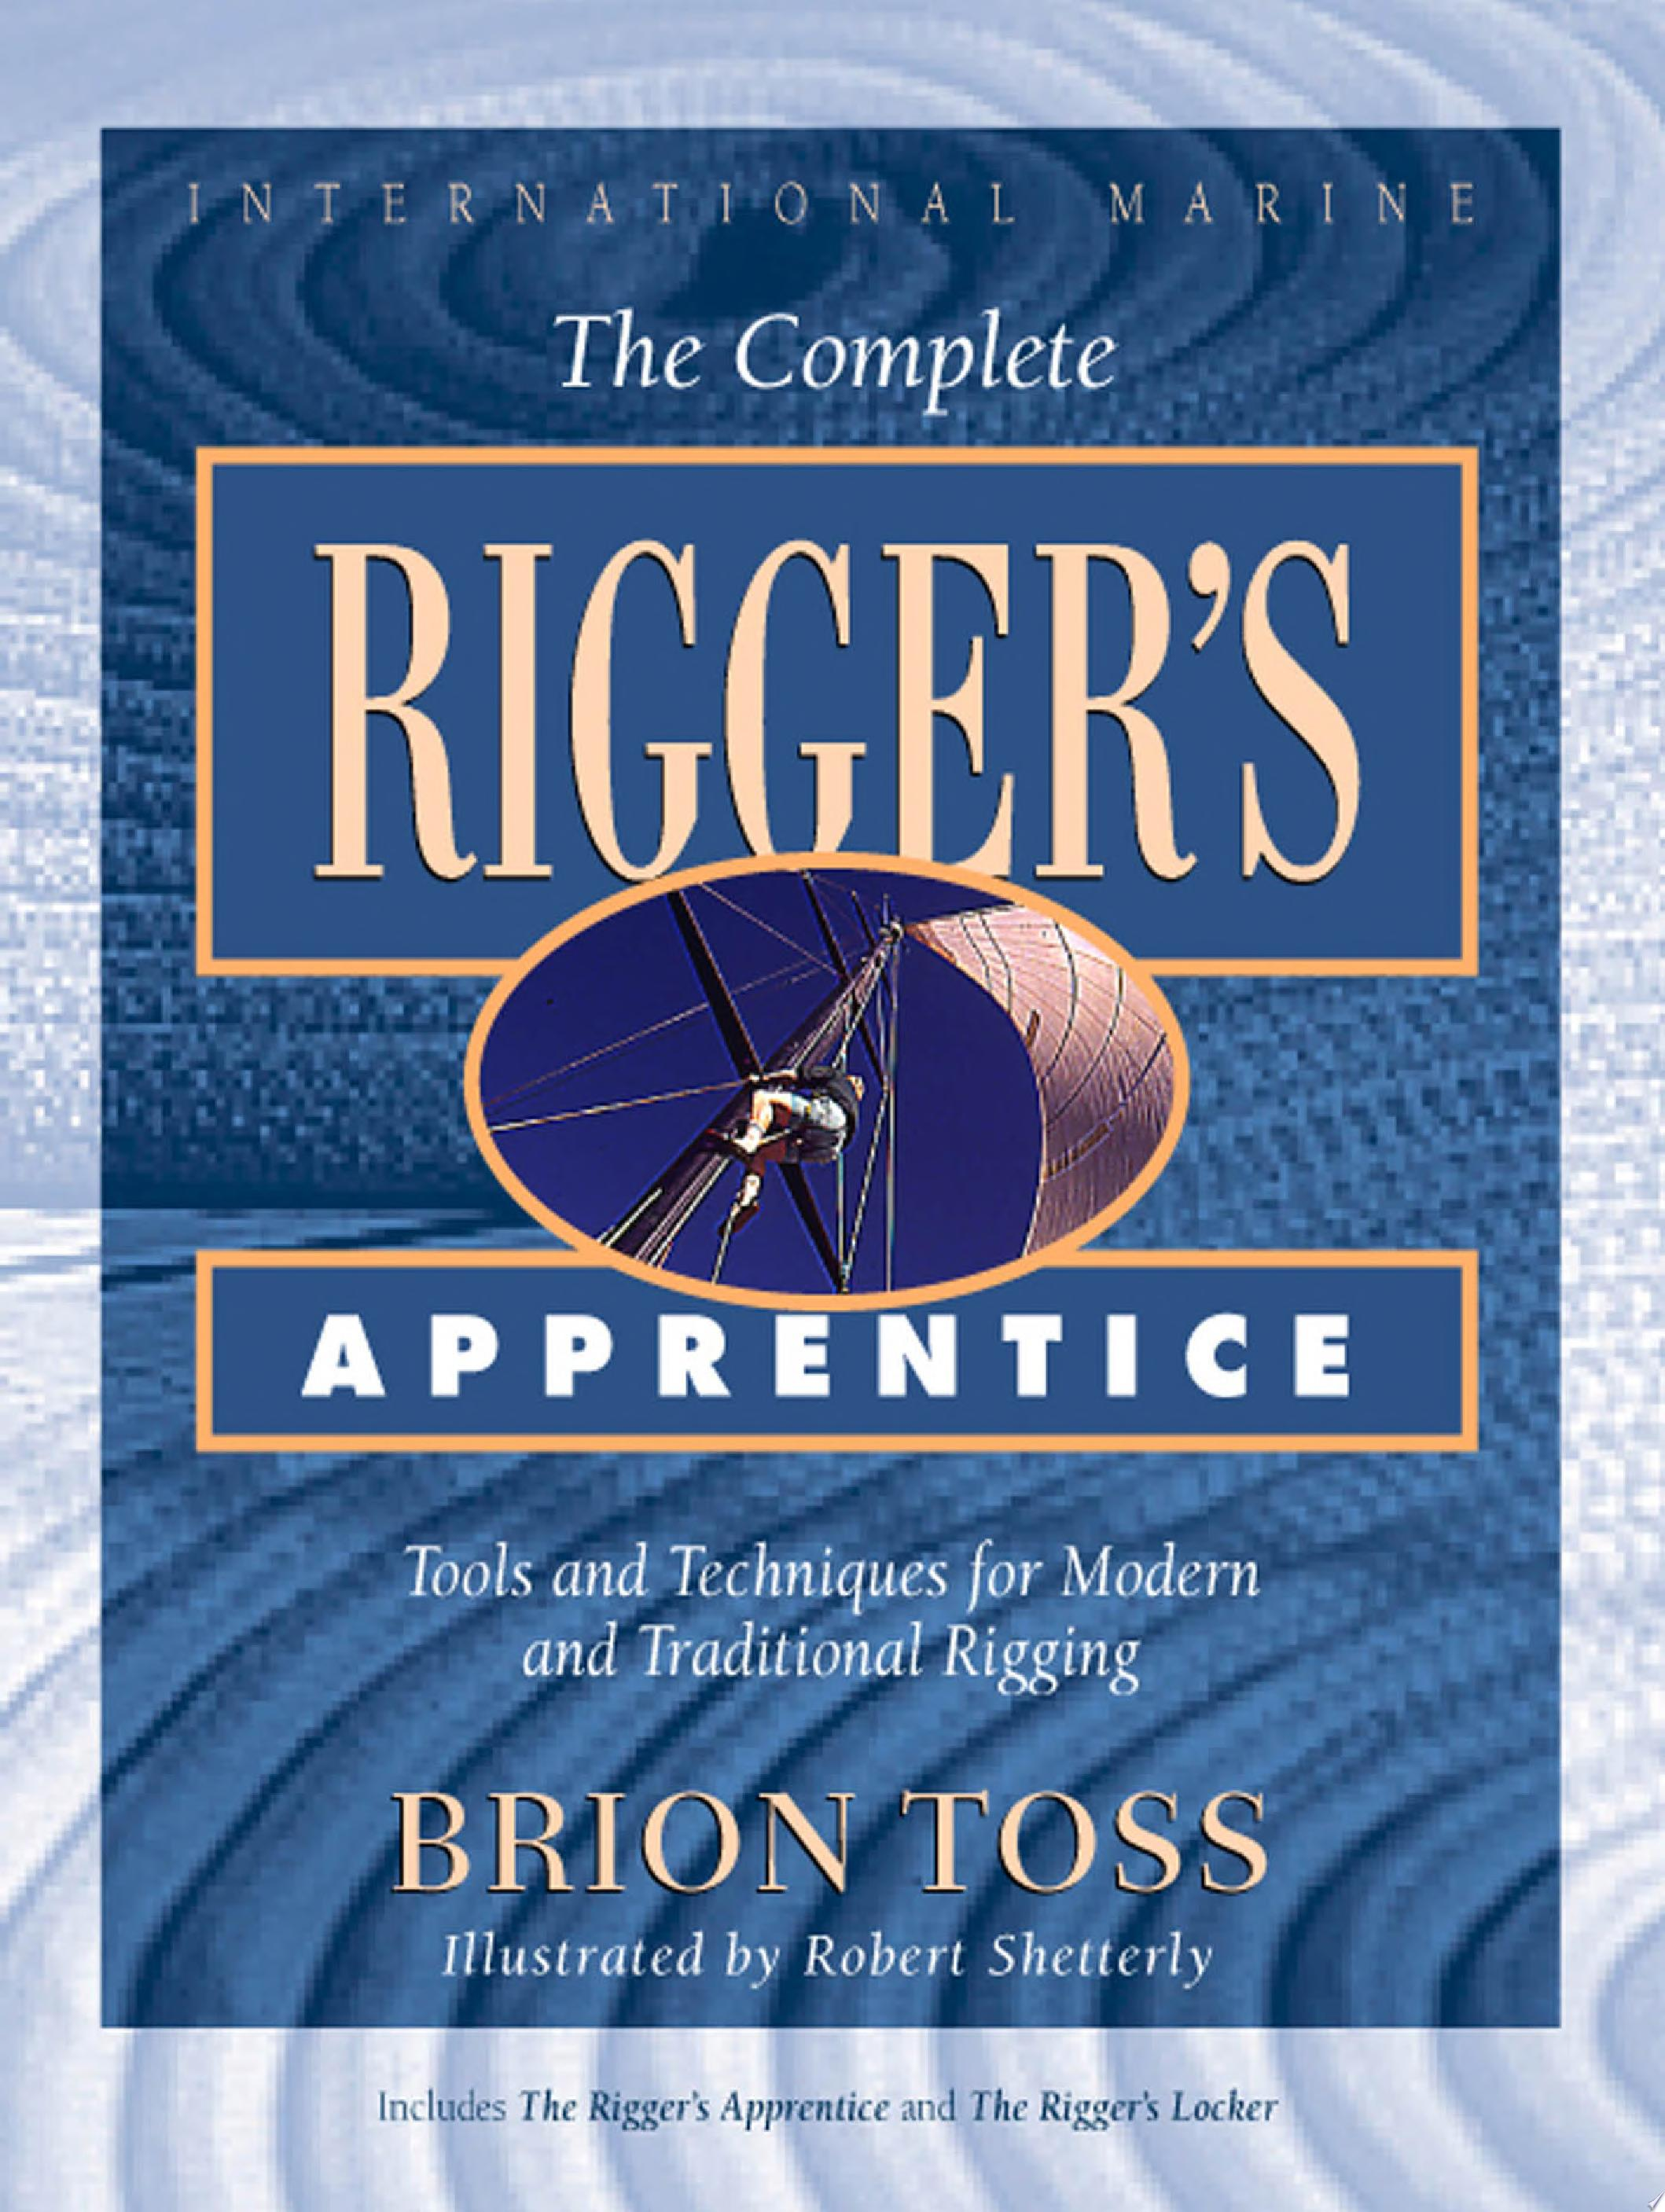 The Complete Rigger s Apprentice  Tools and Techniques for Modern and Traditional Rigging